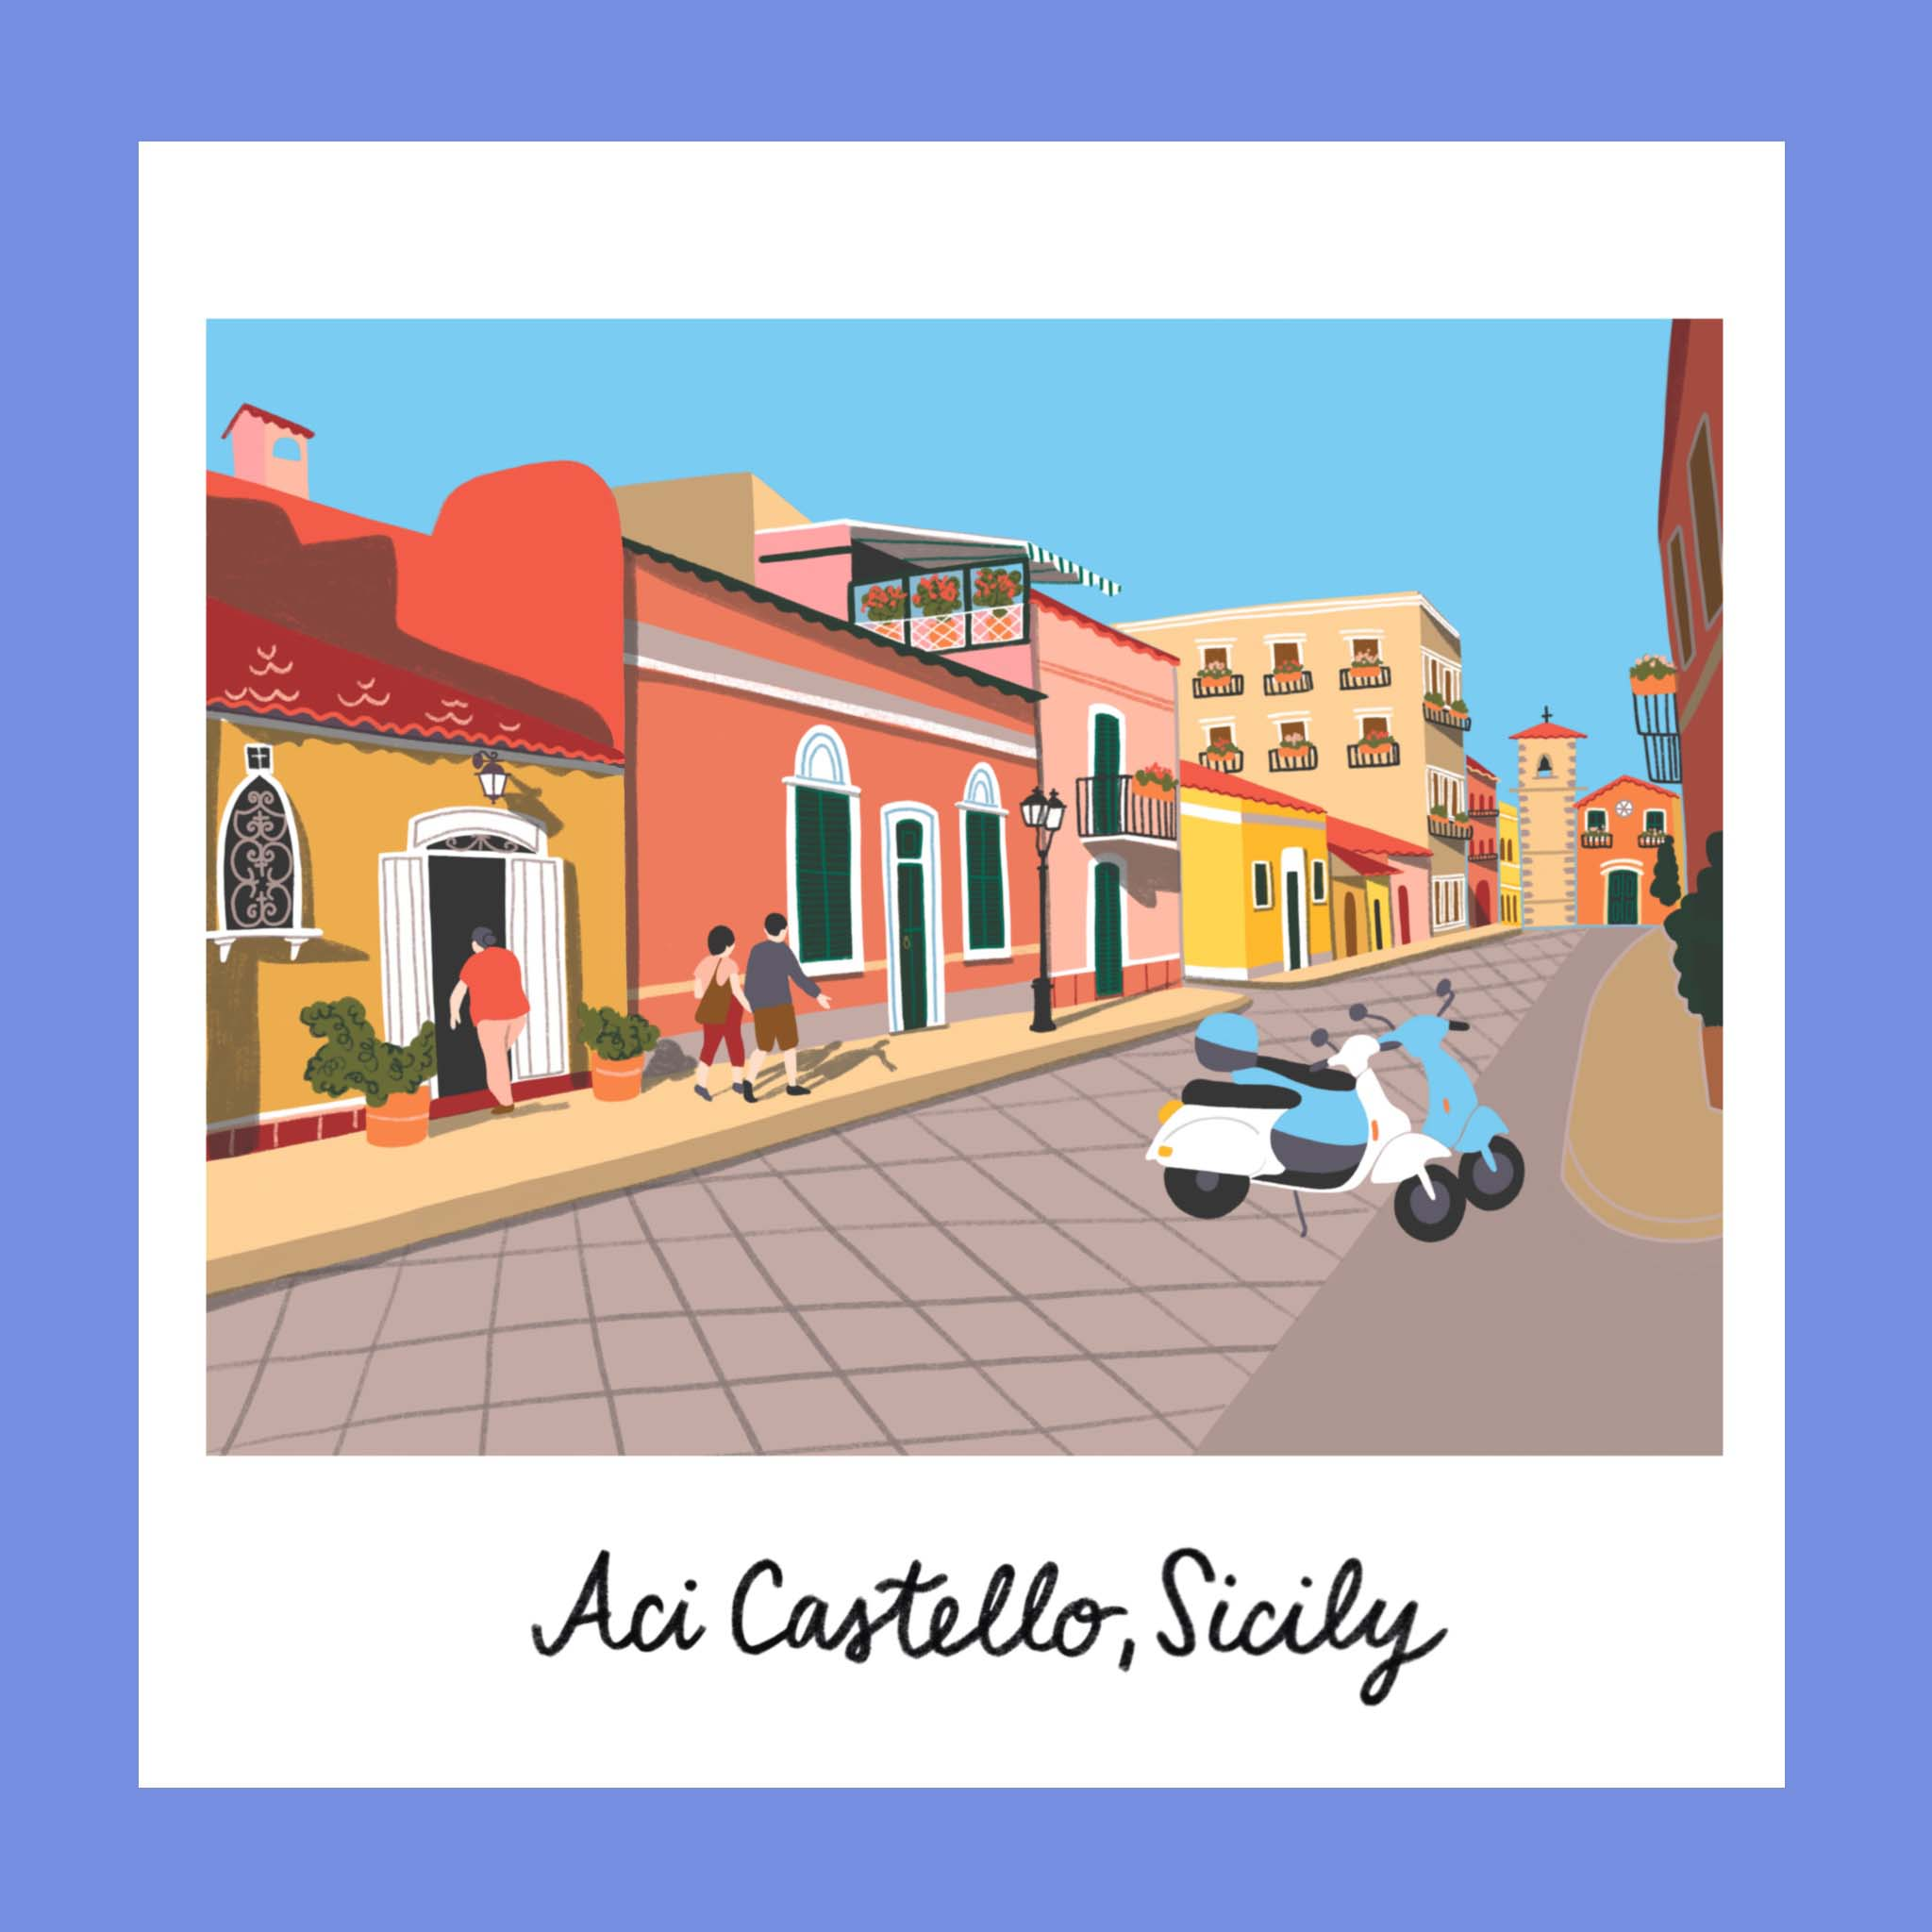 Copy of Traveling iPad drawing series: Ace Castello, Sicily